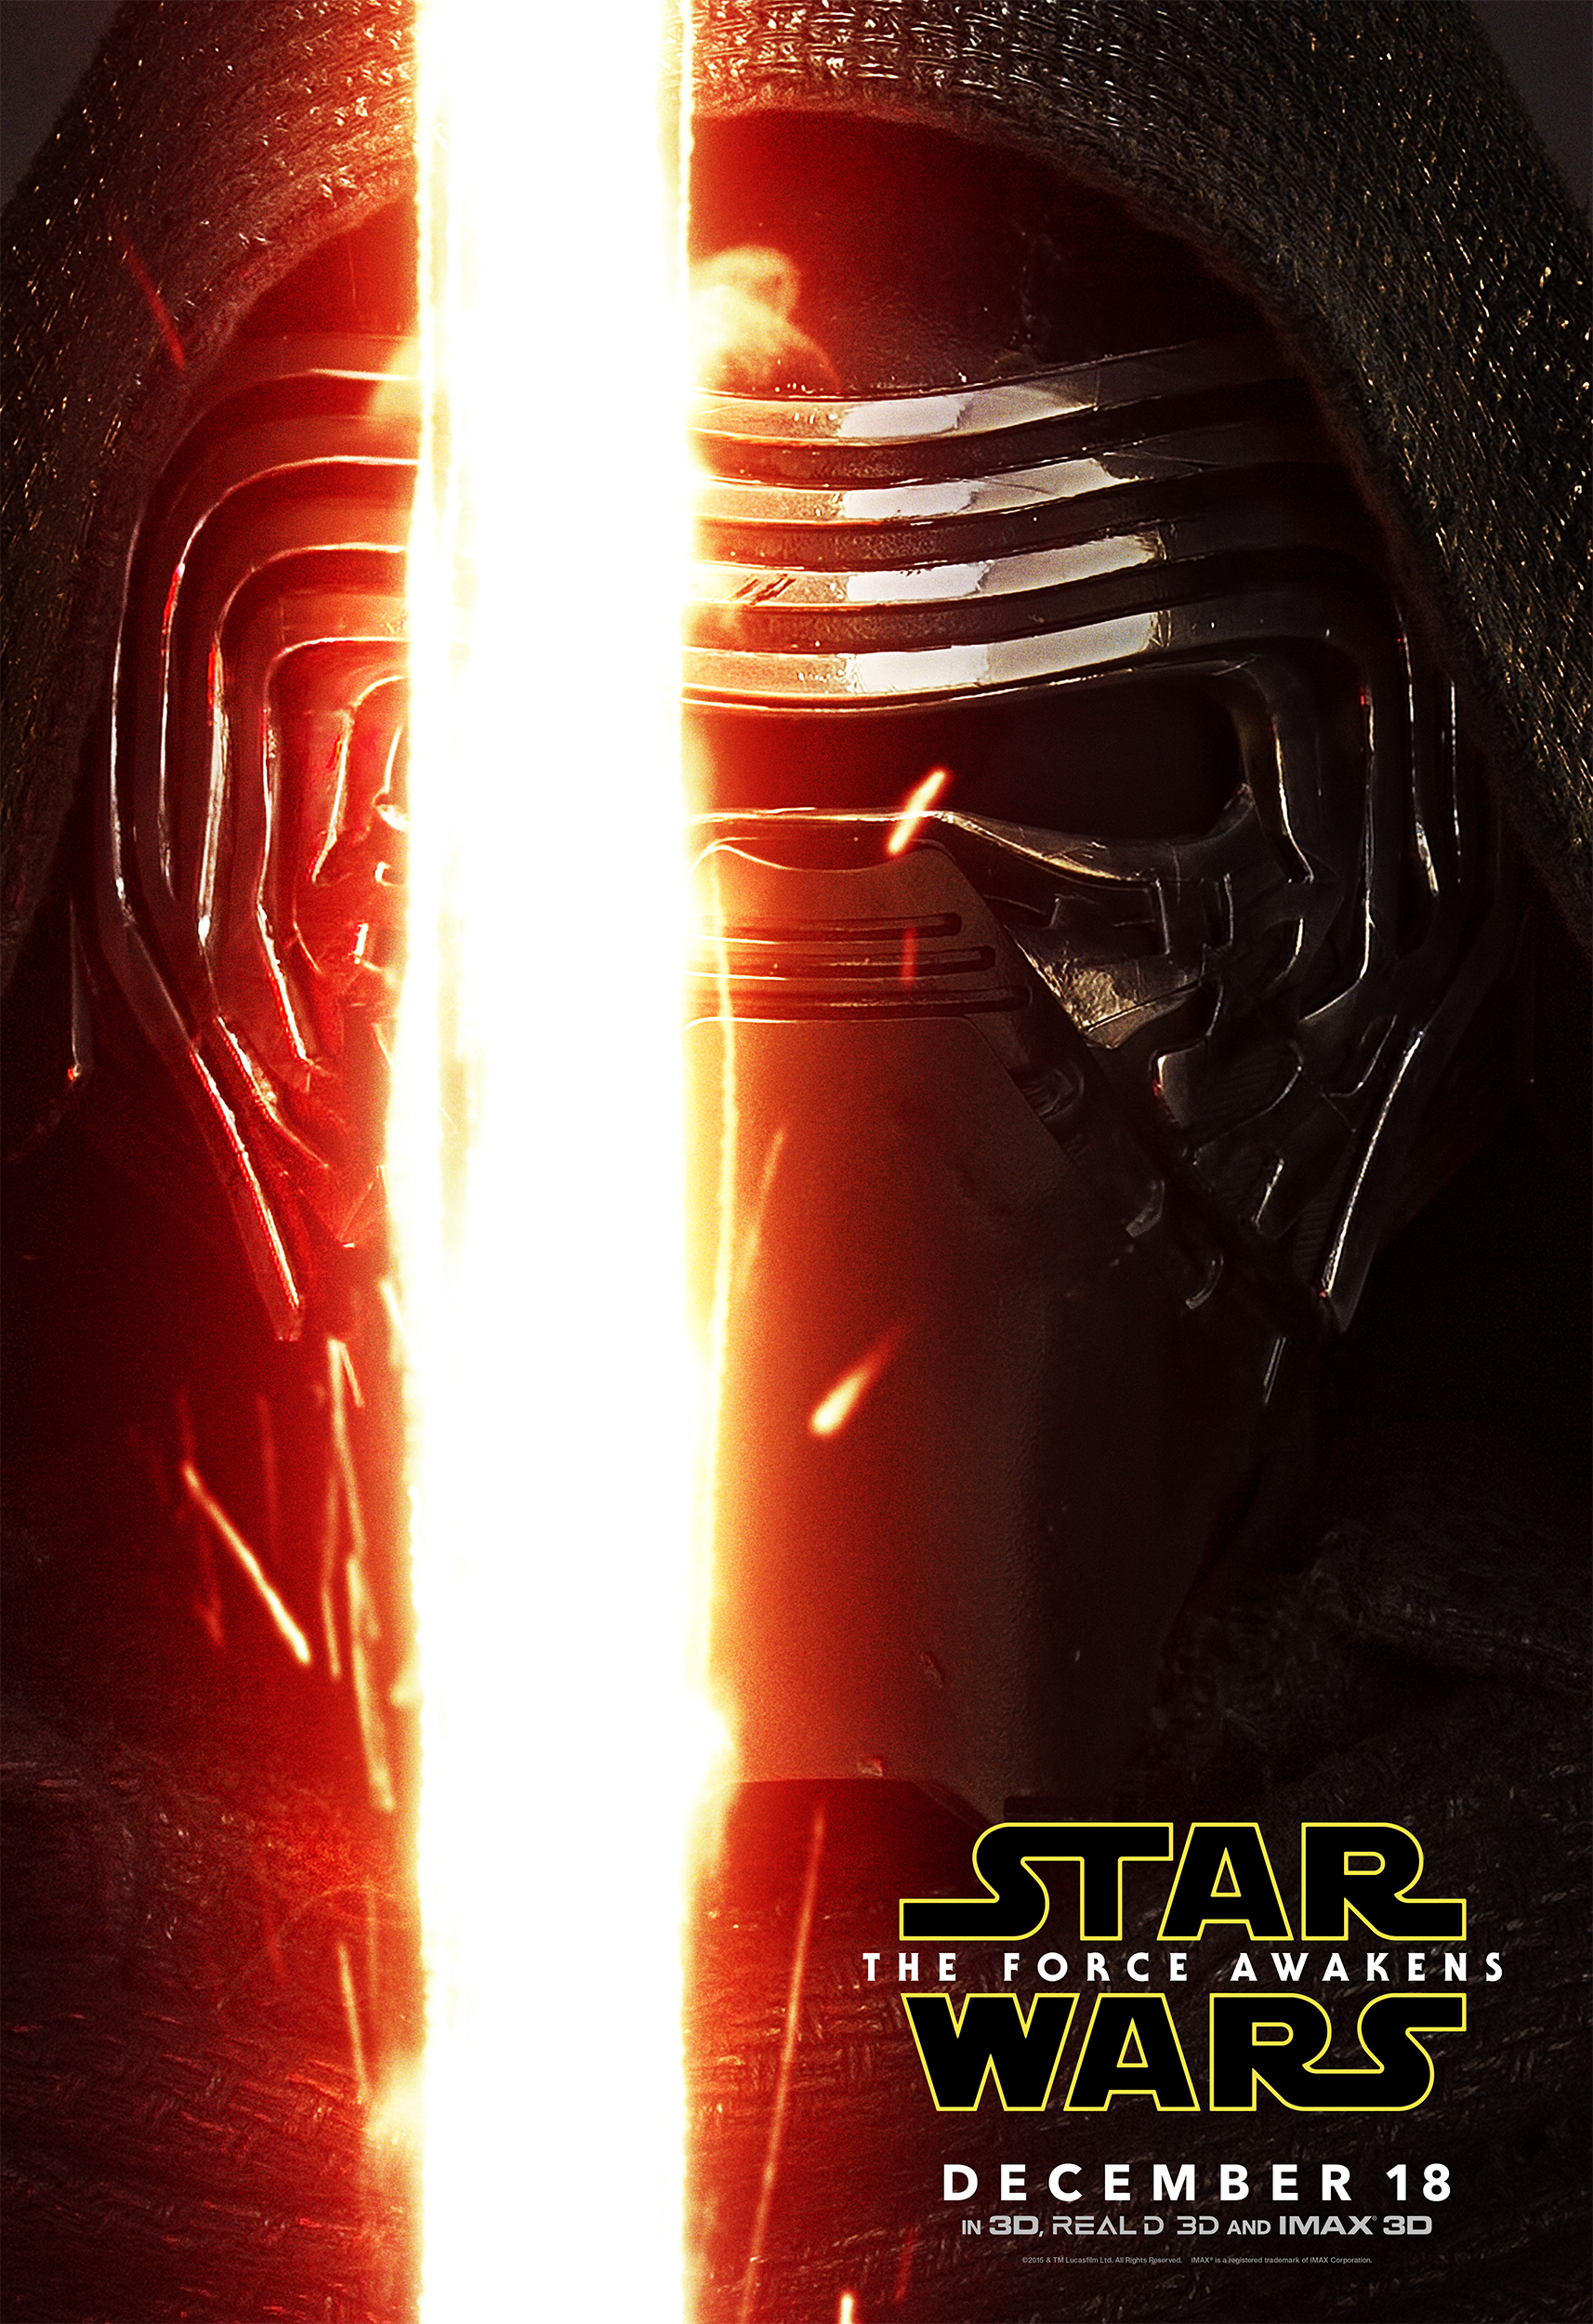 Kylo Ren - The Force Awakens